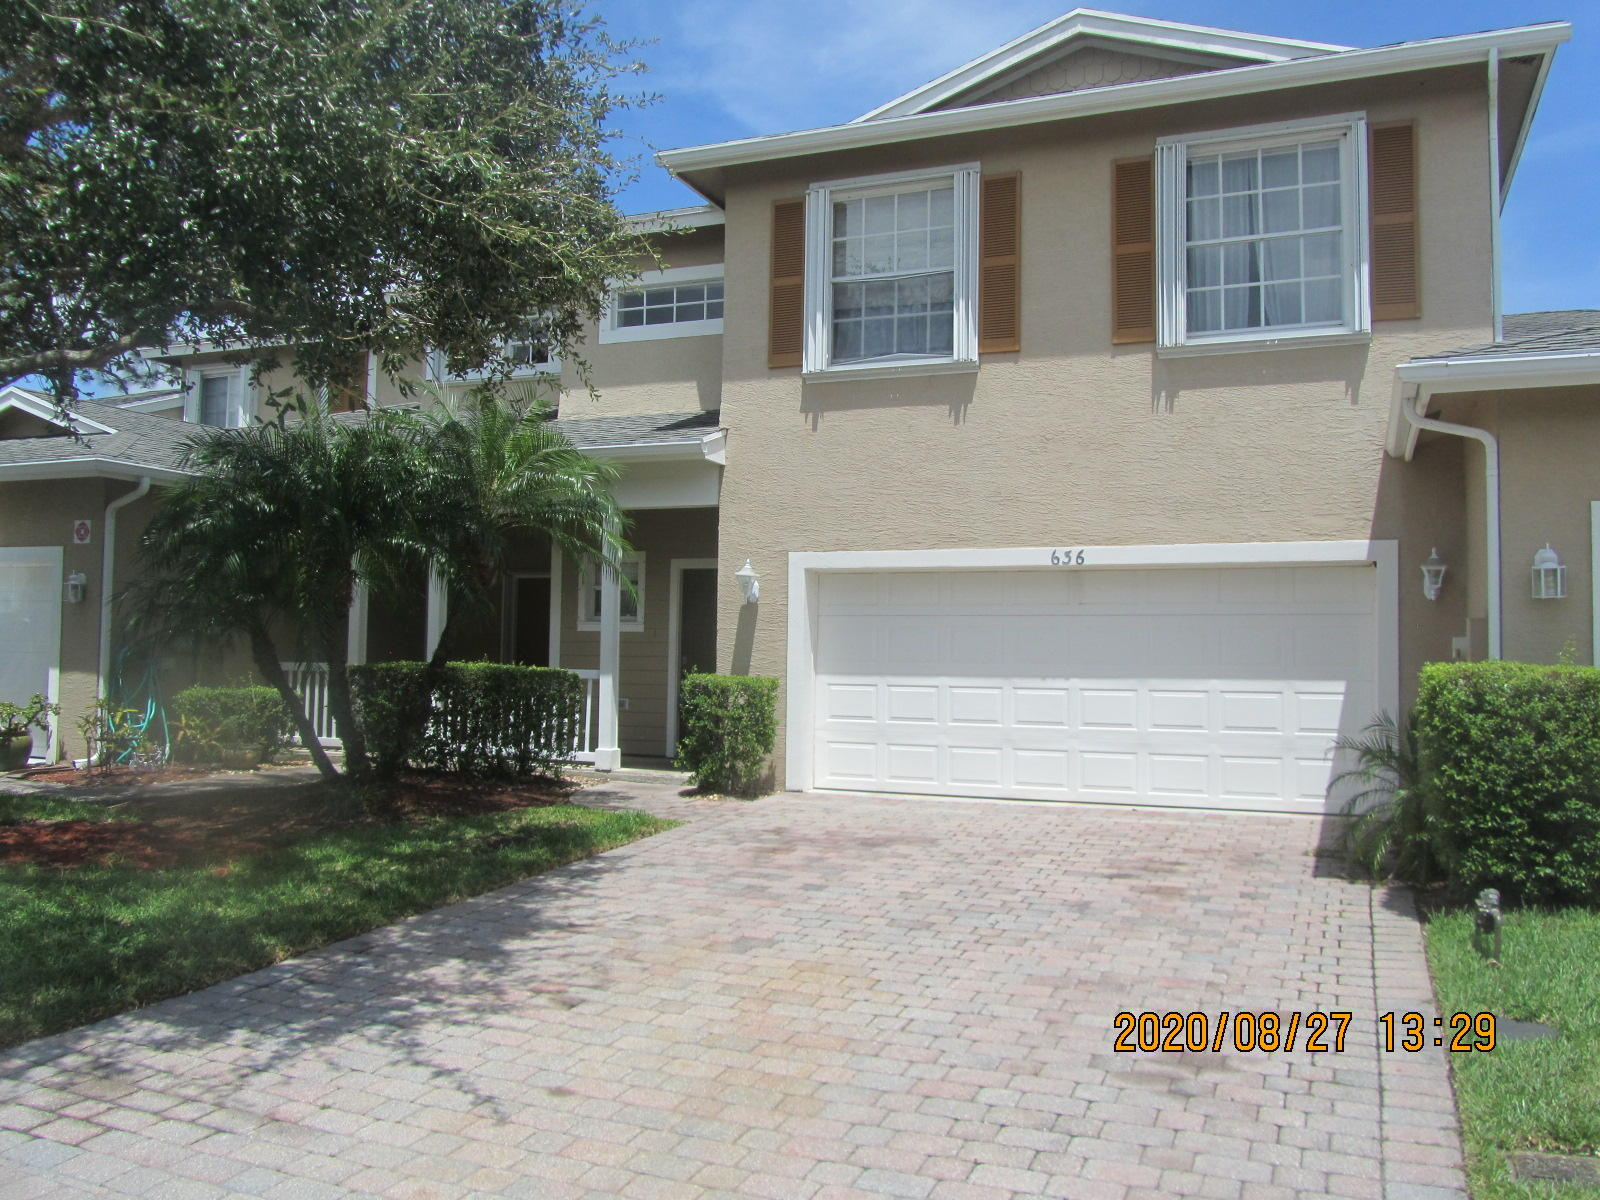 636 NE Bent Paddle Lane, Port Saint Lucie FL 34983